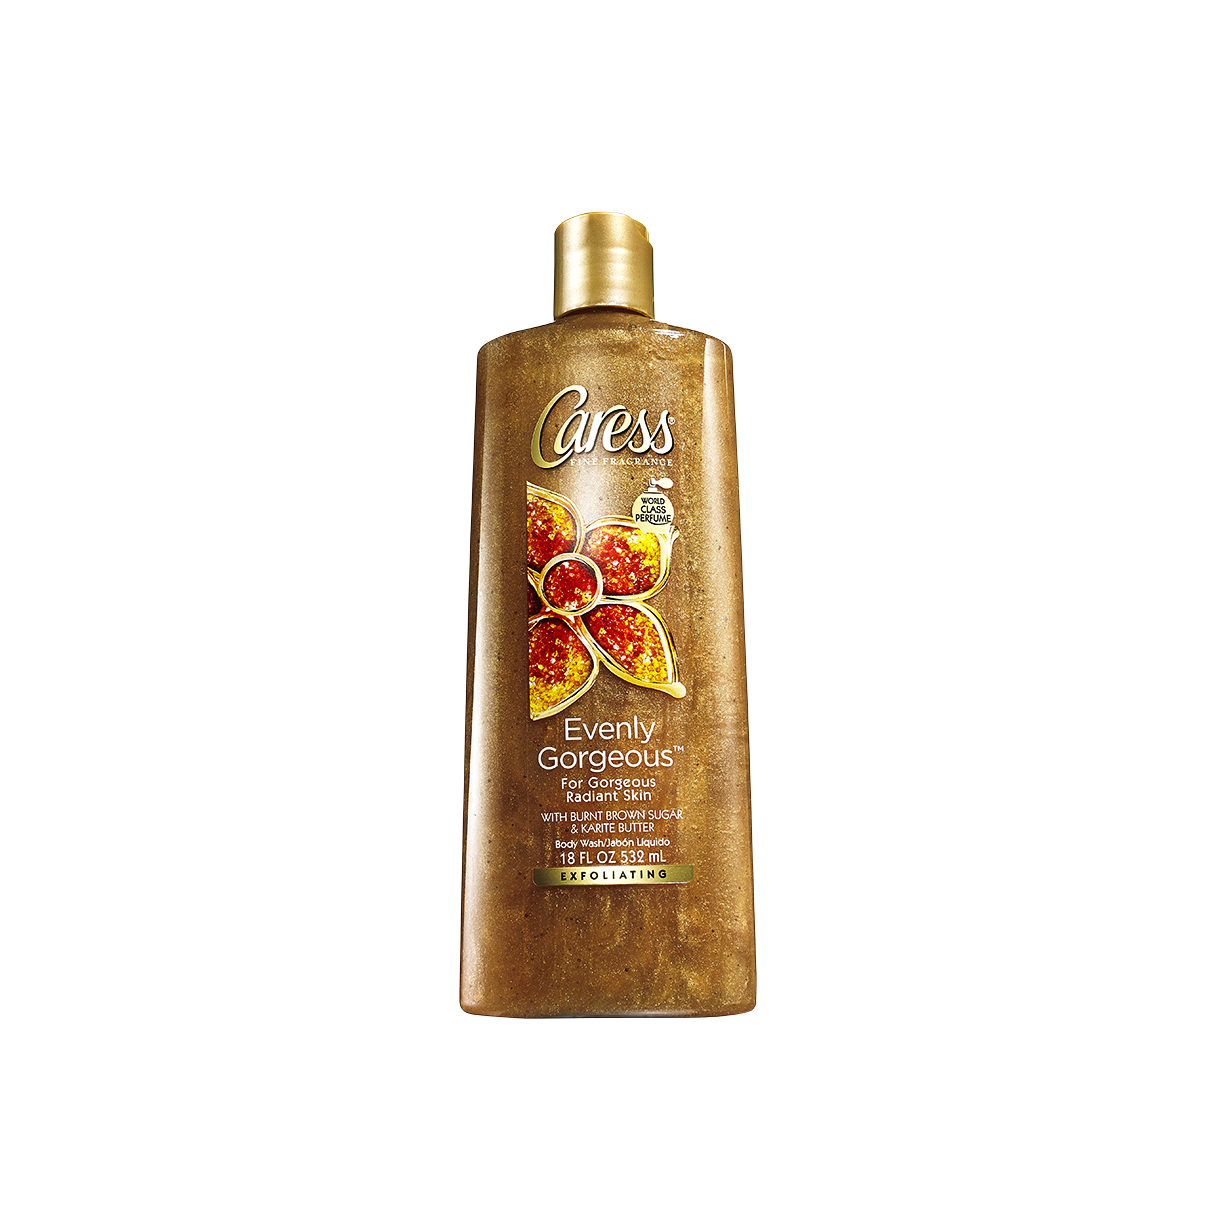 Caress Evenly Gorgeous Body Wash